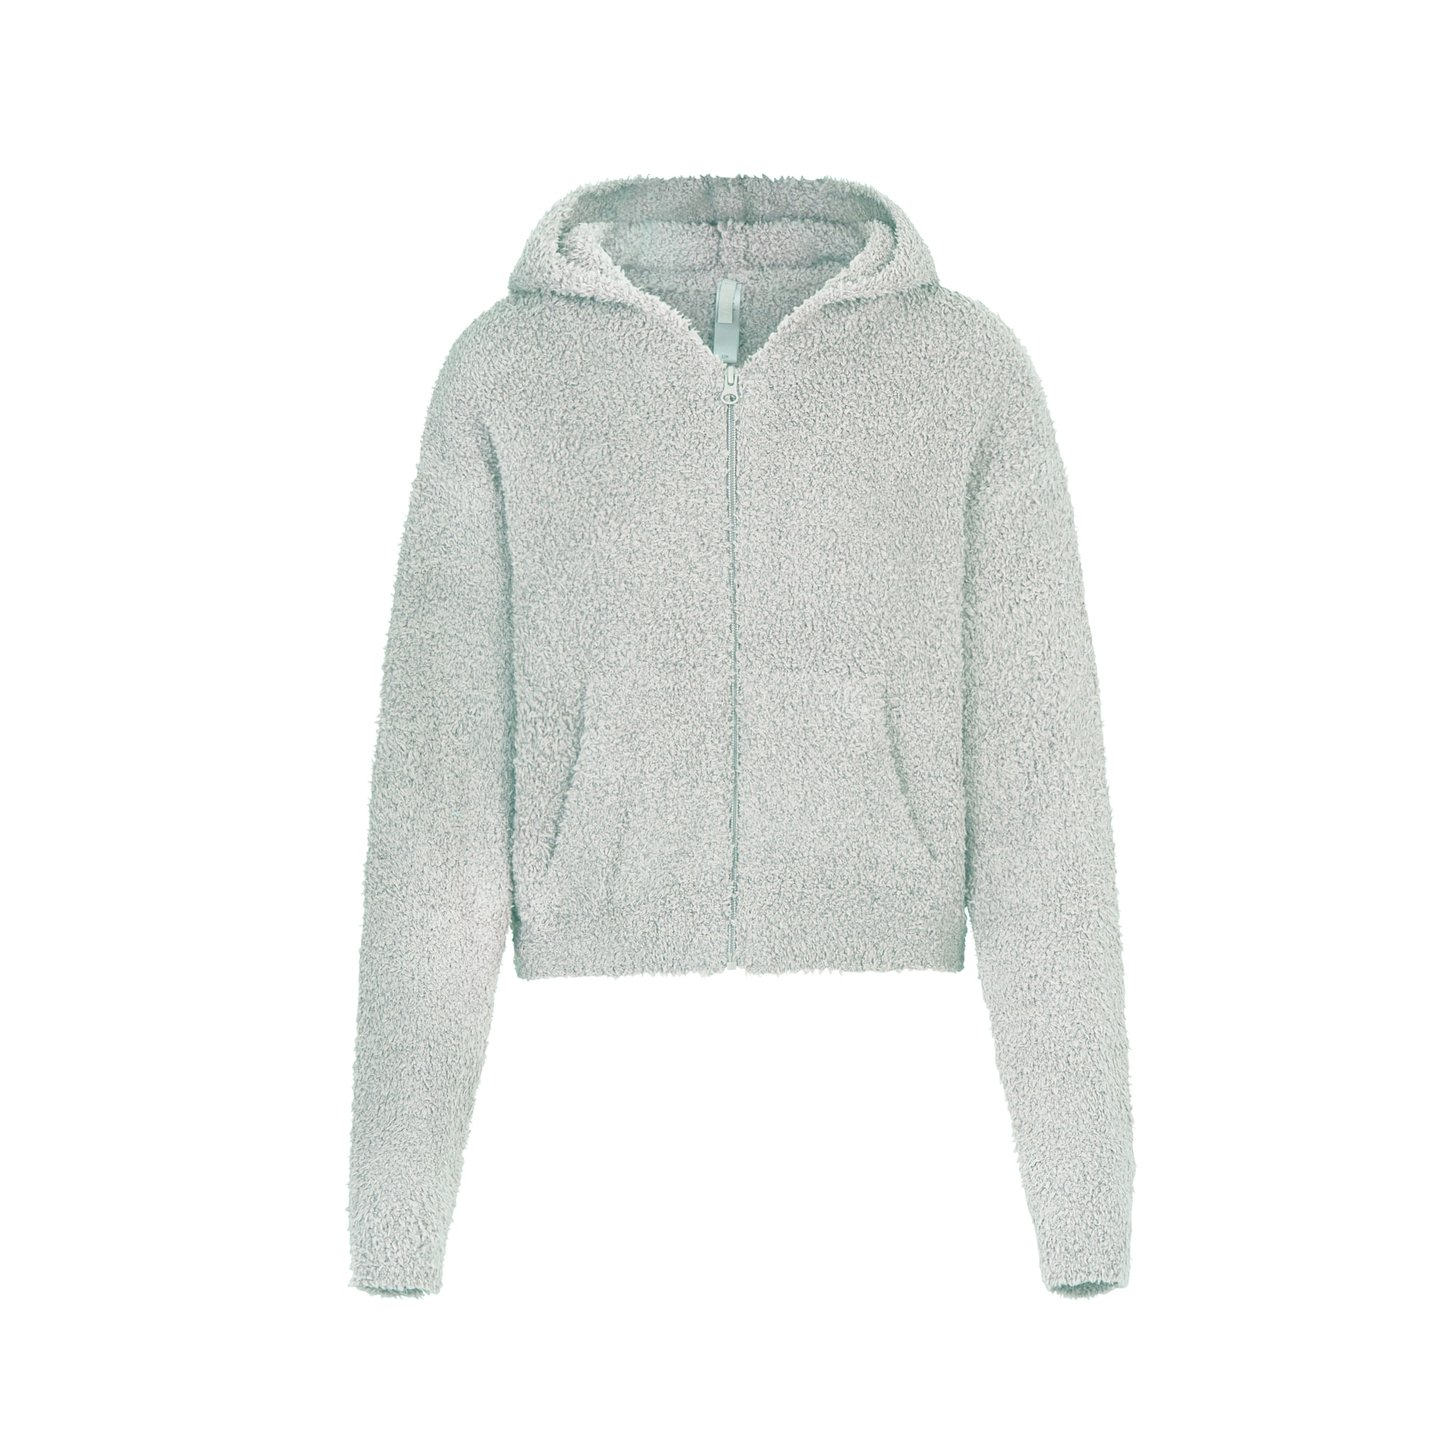 COZY KNIT ZIP UP HOODIE by Skims, available on skims.com for $82 Kendall Jenner Outerwear Exact Product